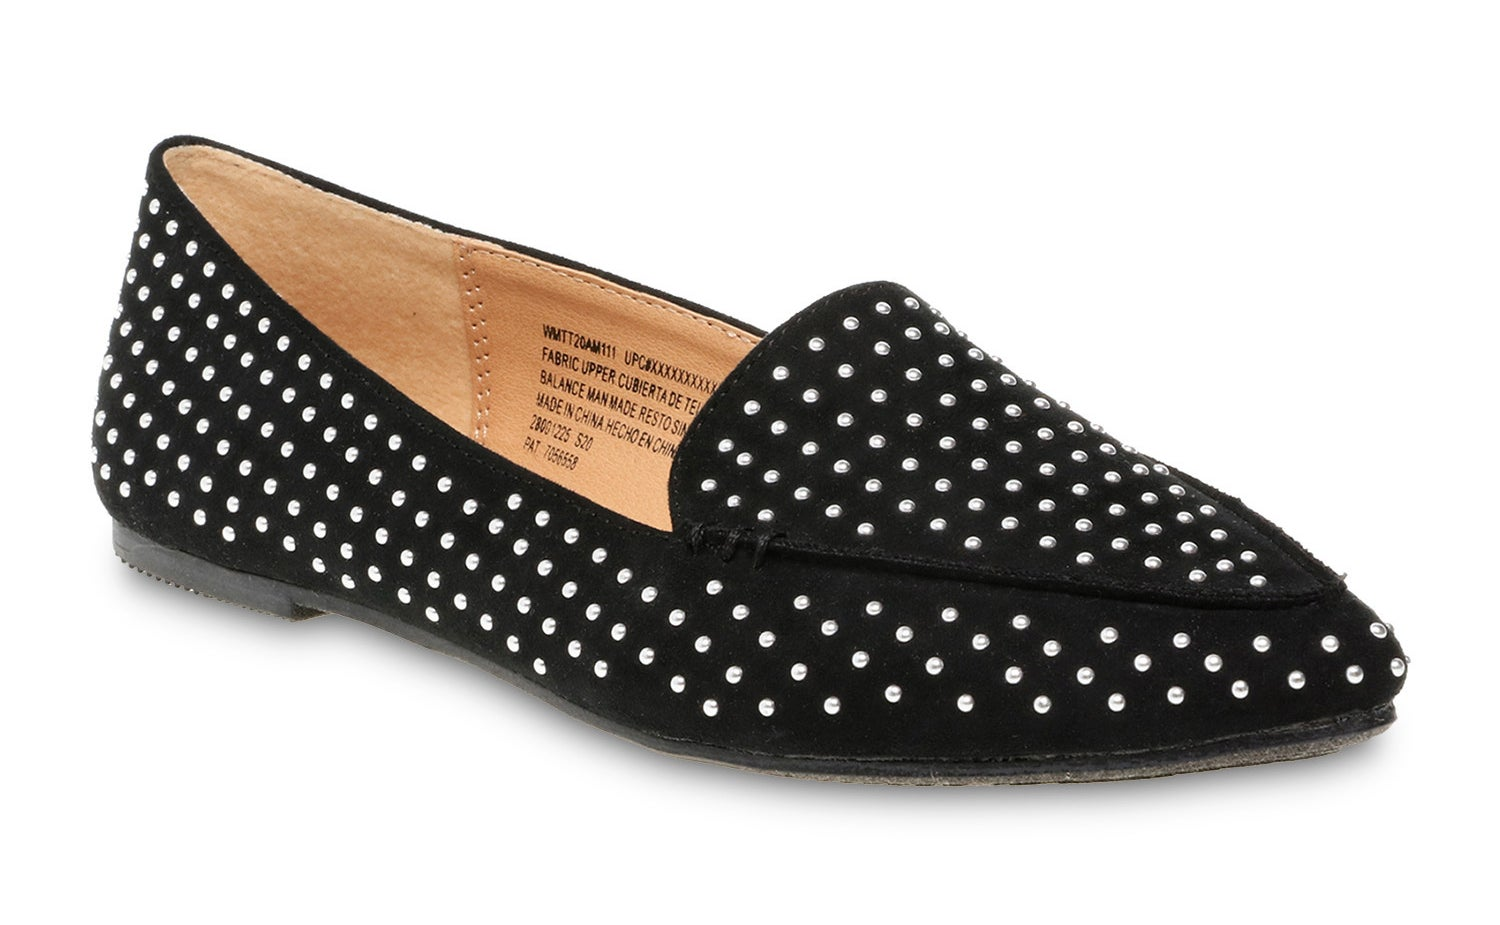 The black shoes with studded embellishments